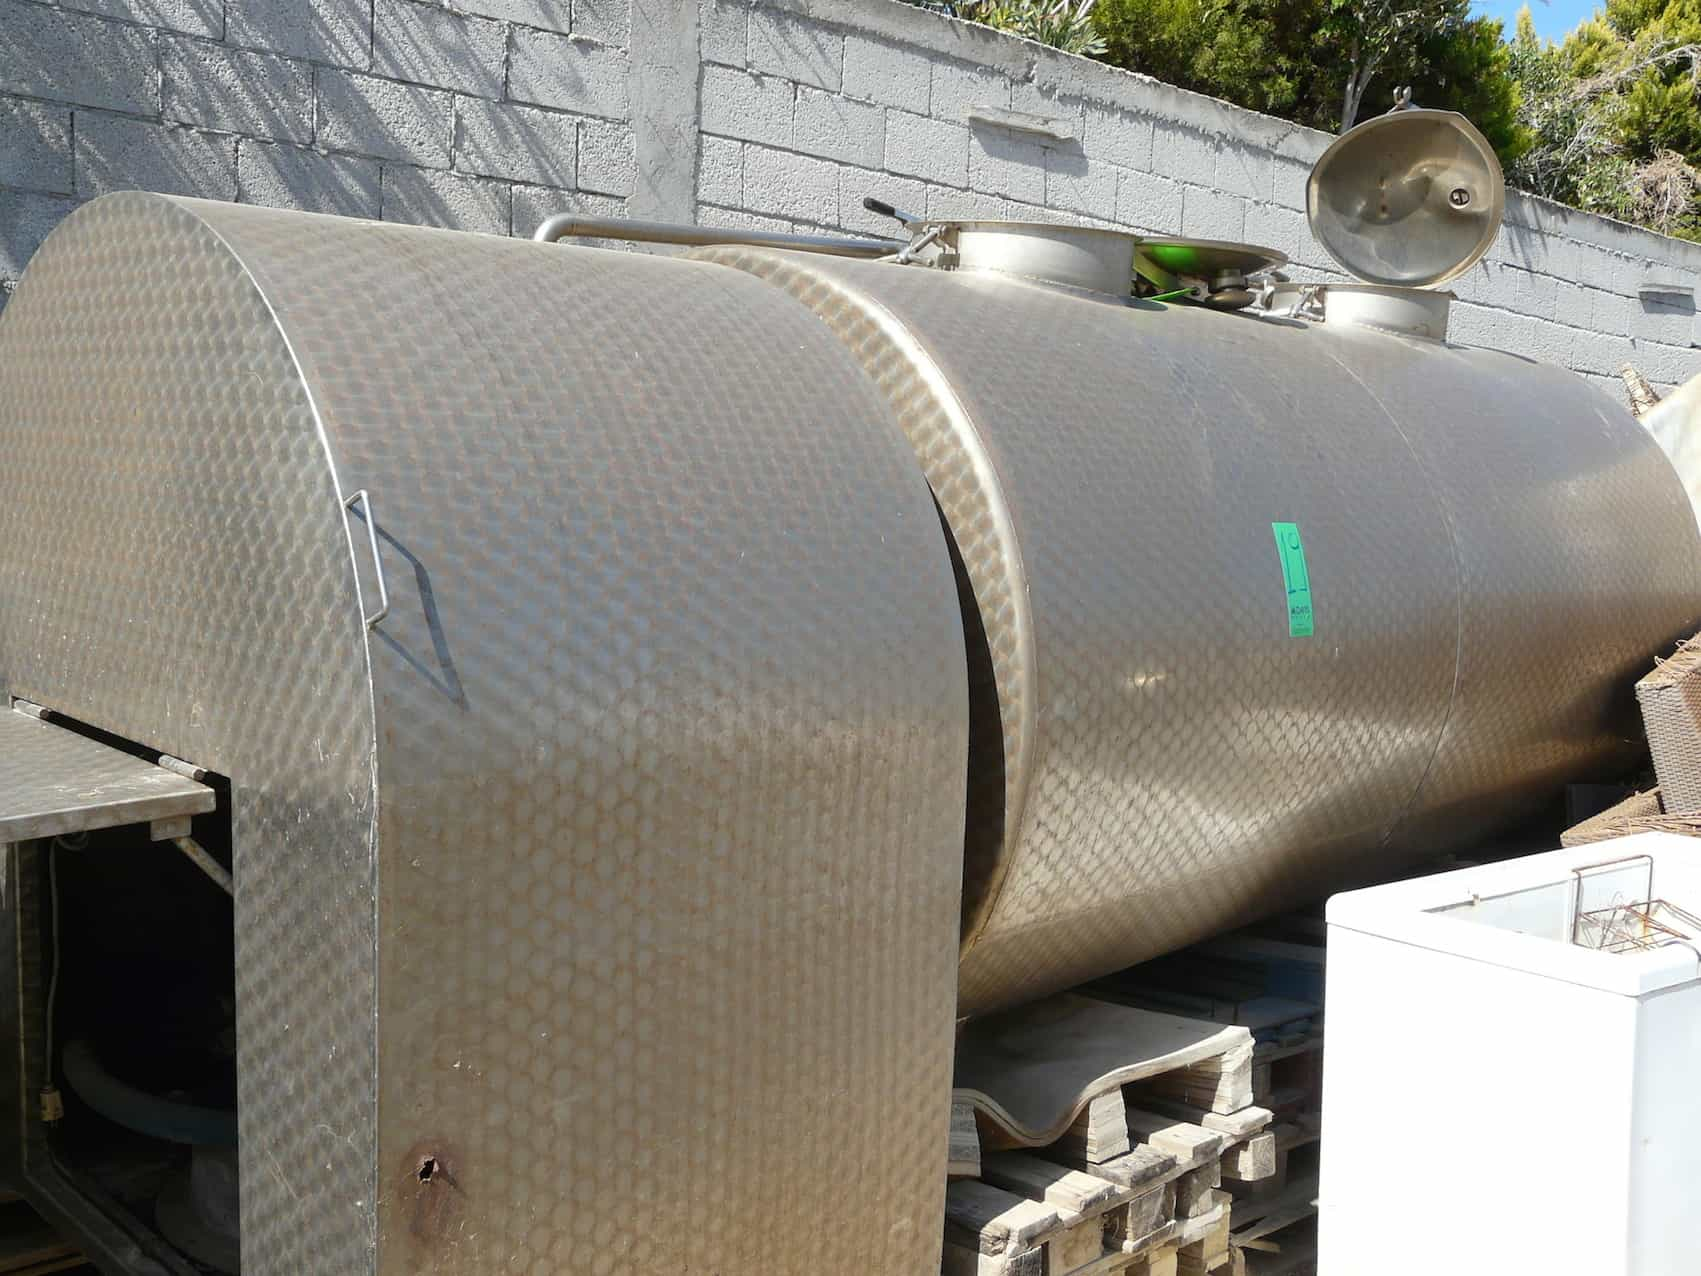 Double Jacketed Transport Tank for 3000L with Two Chambers for a total of 3000L. Transfer Pump ERMICON, Dimensions: 430x150, Y.O.M.: 2003